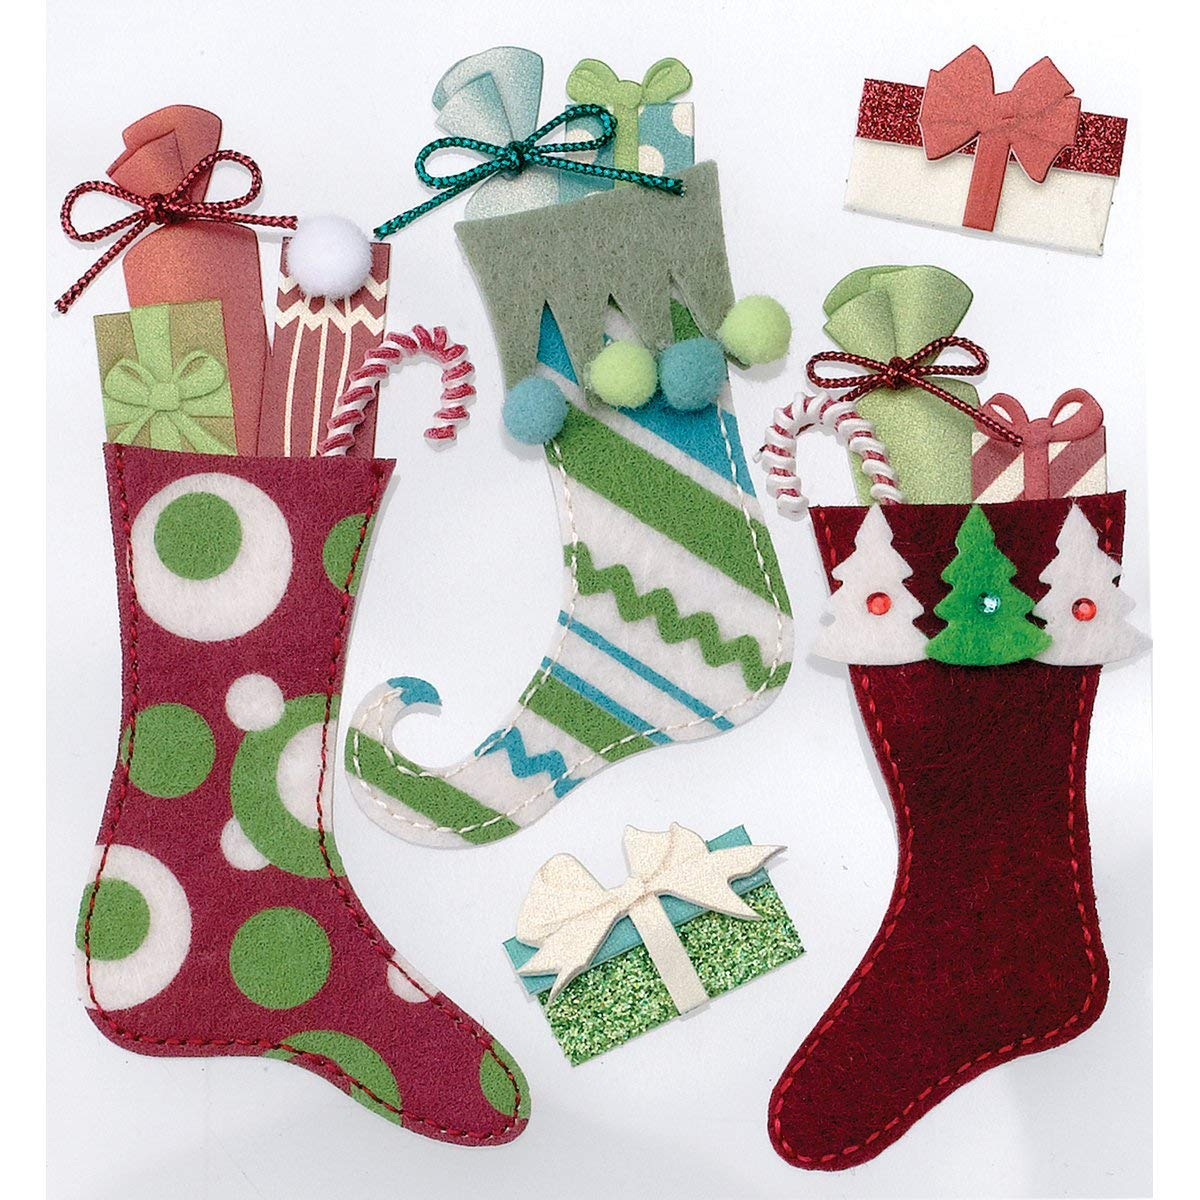 Tactical Christmas Stocking Stuffed.Cheap Stockings Stuffed Find Stockings Stuffed Deals On Line At